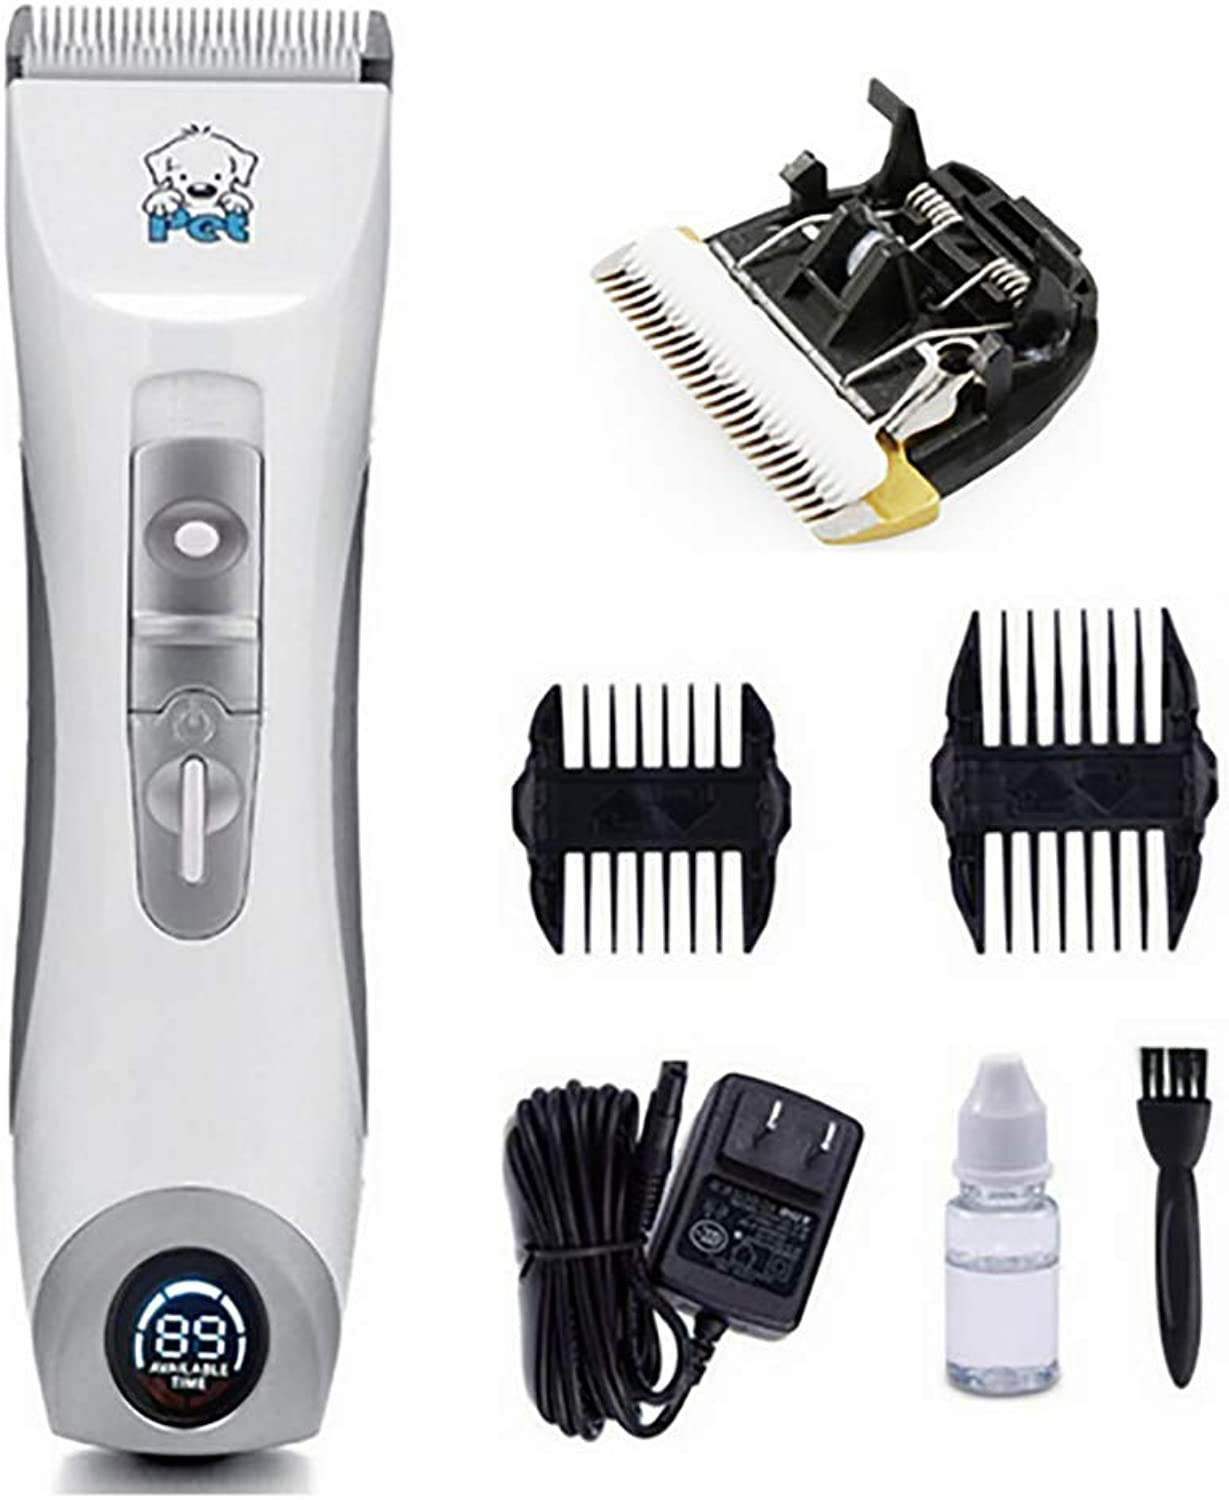 Pet Grooming Clipper, Rechargeable Cordless Cat and Dog Clippers, Low Noise Electric Pet Trimmer, Pet Clipper for Trimming The Hair Around Face, Eyes, Ears, Paw, Rump